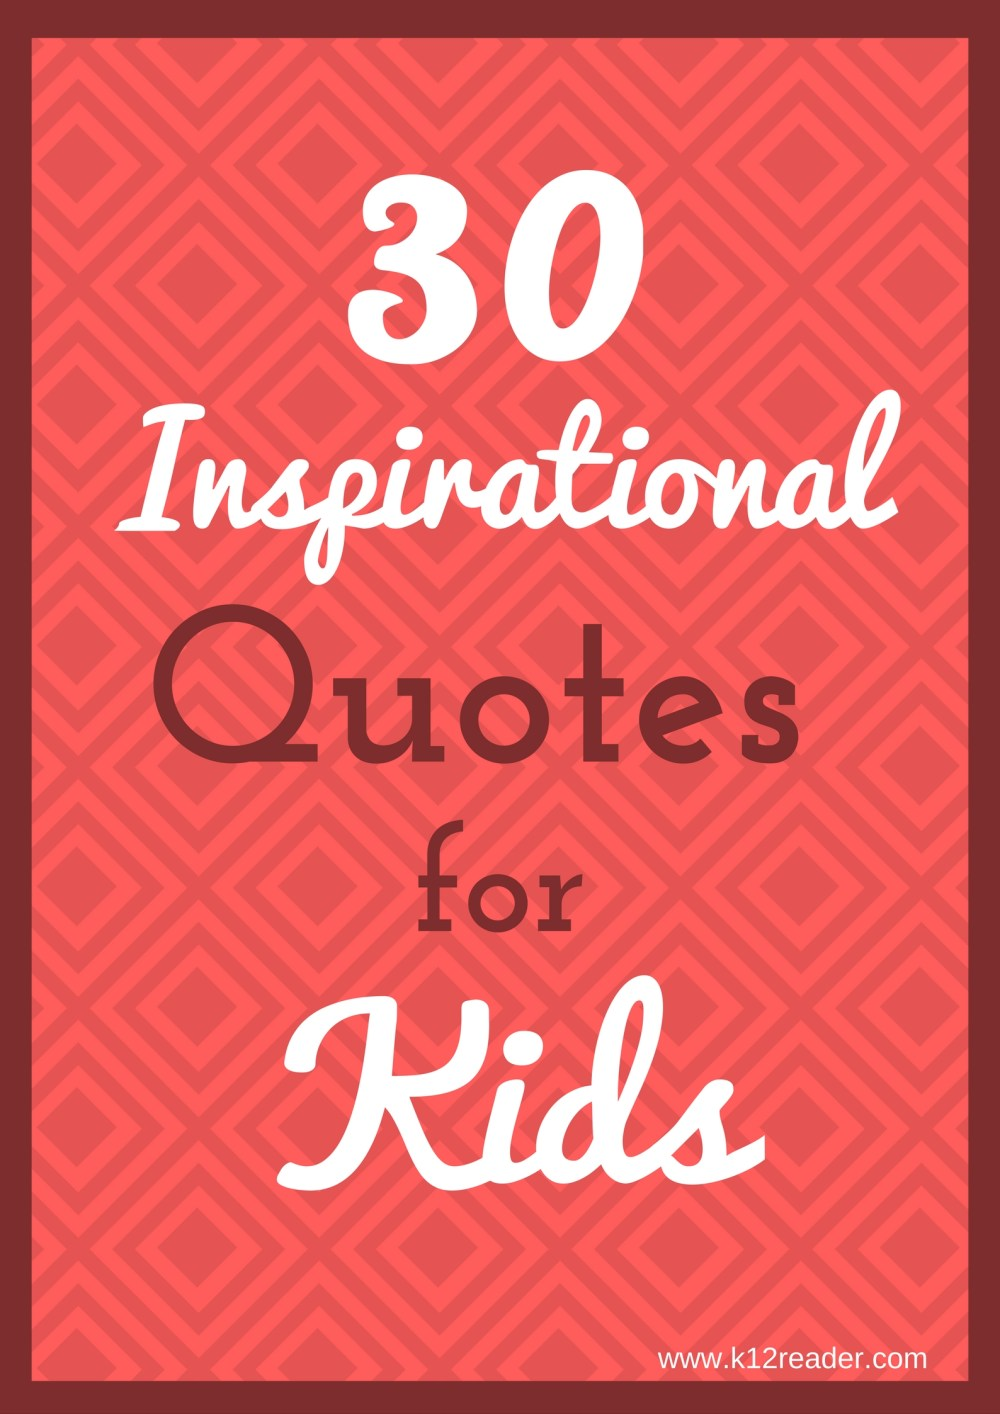 medium resolution of 30 Inspirational Quotes for Kids